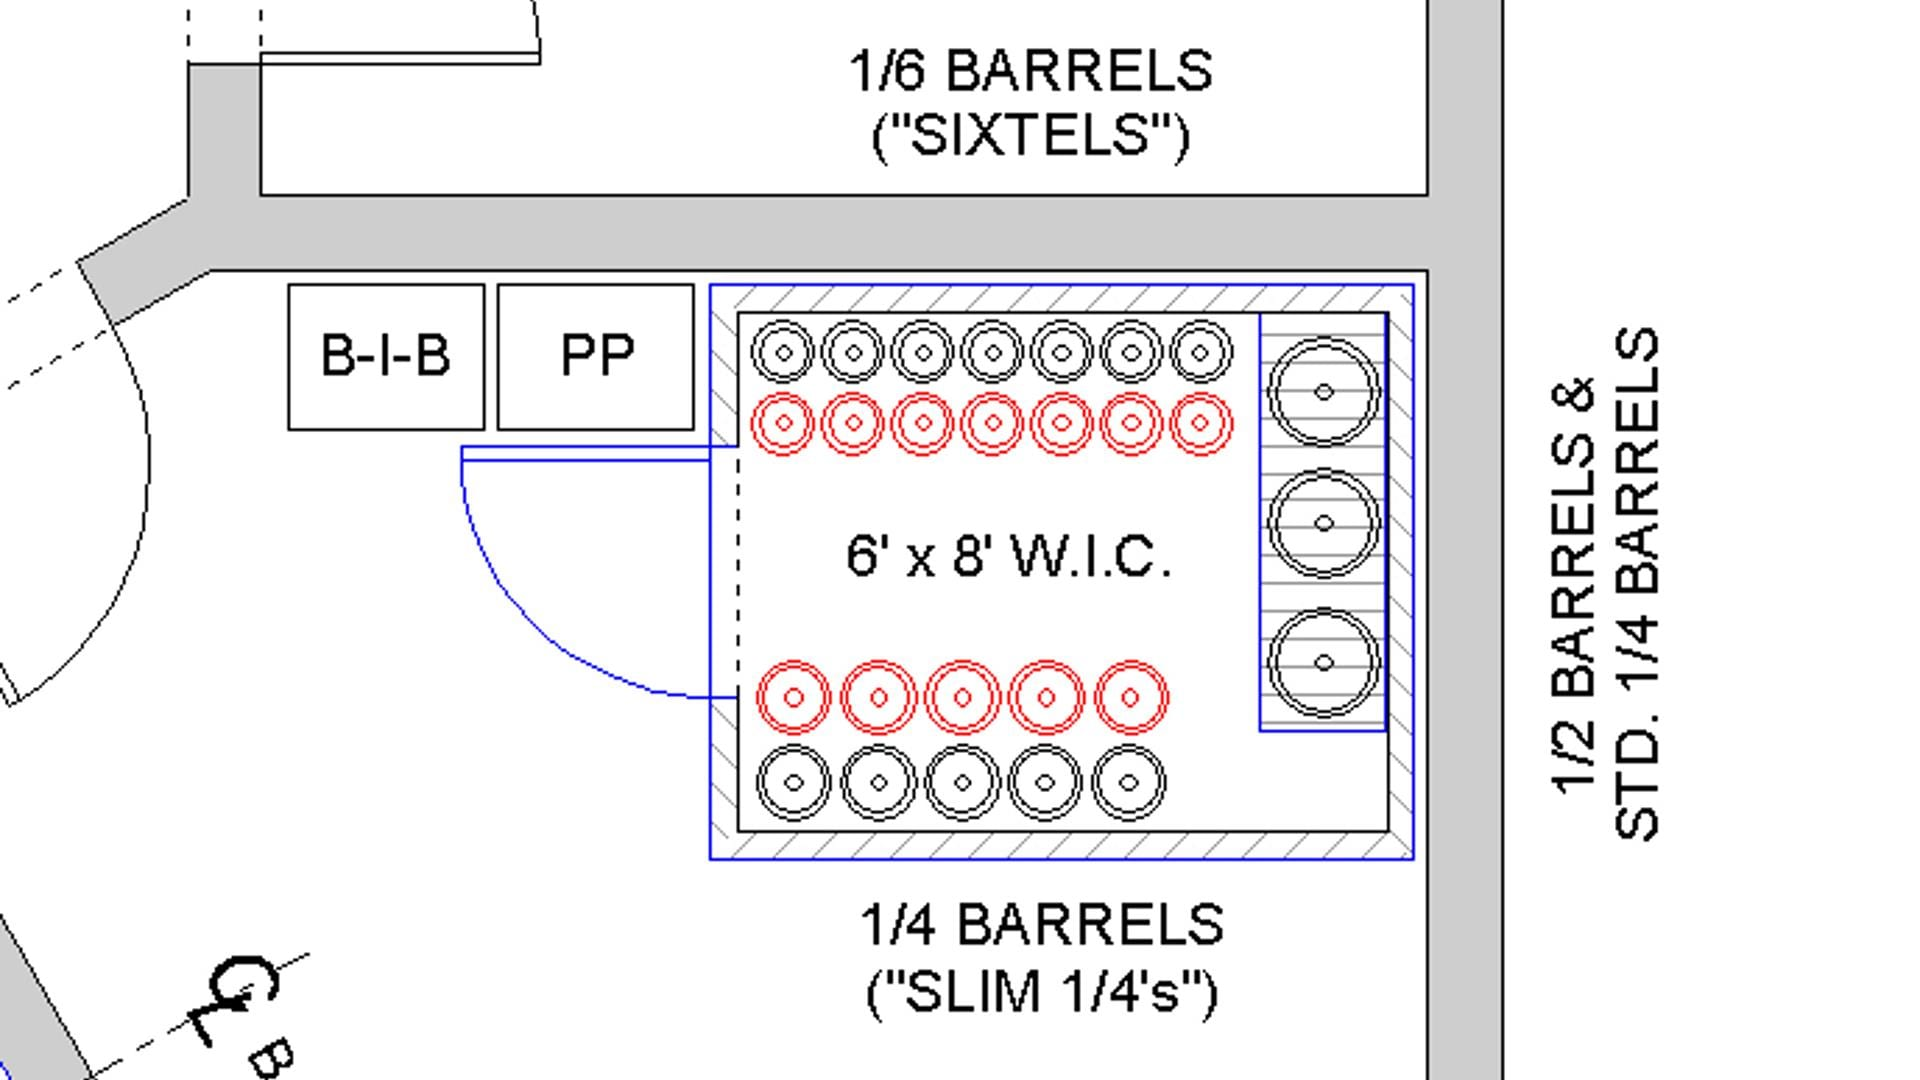 Architectural drawing depicting layout of draft beer barrels in walk-in cooler